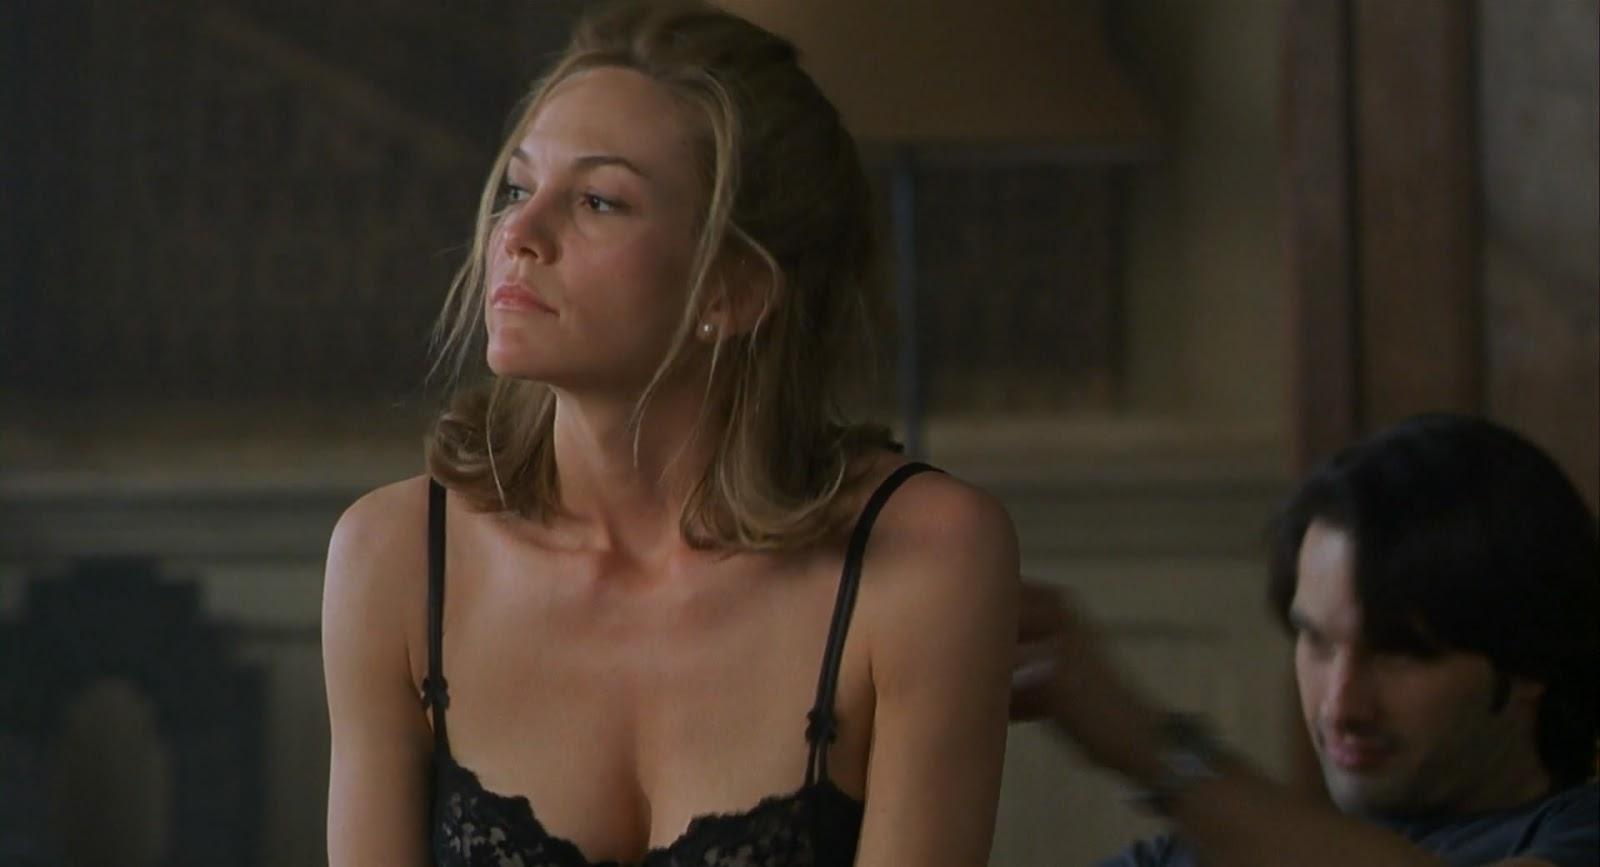 Dexter nude scene compilation yvonne strahovski and others - 1 part 8